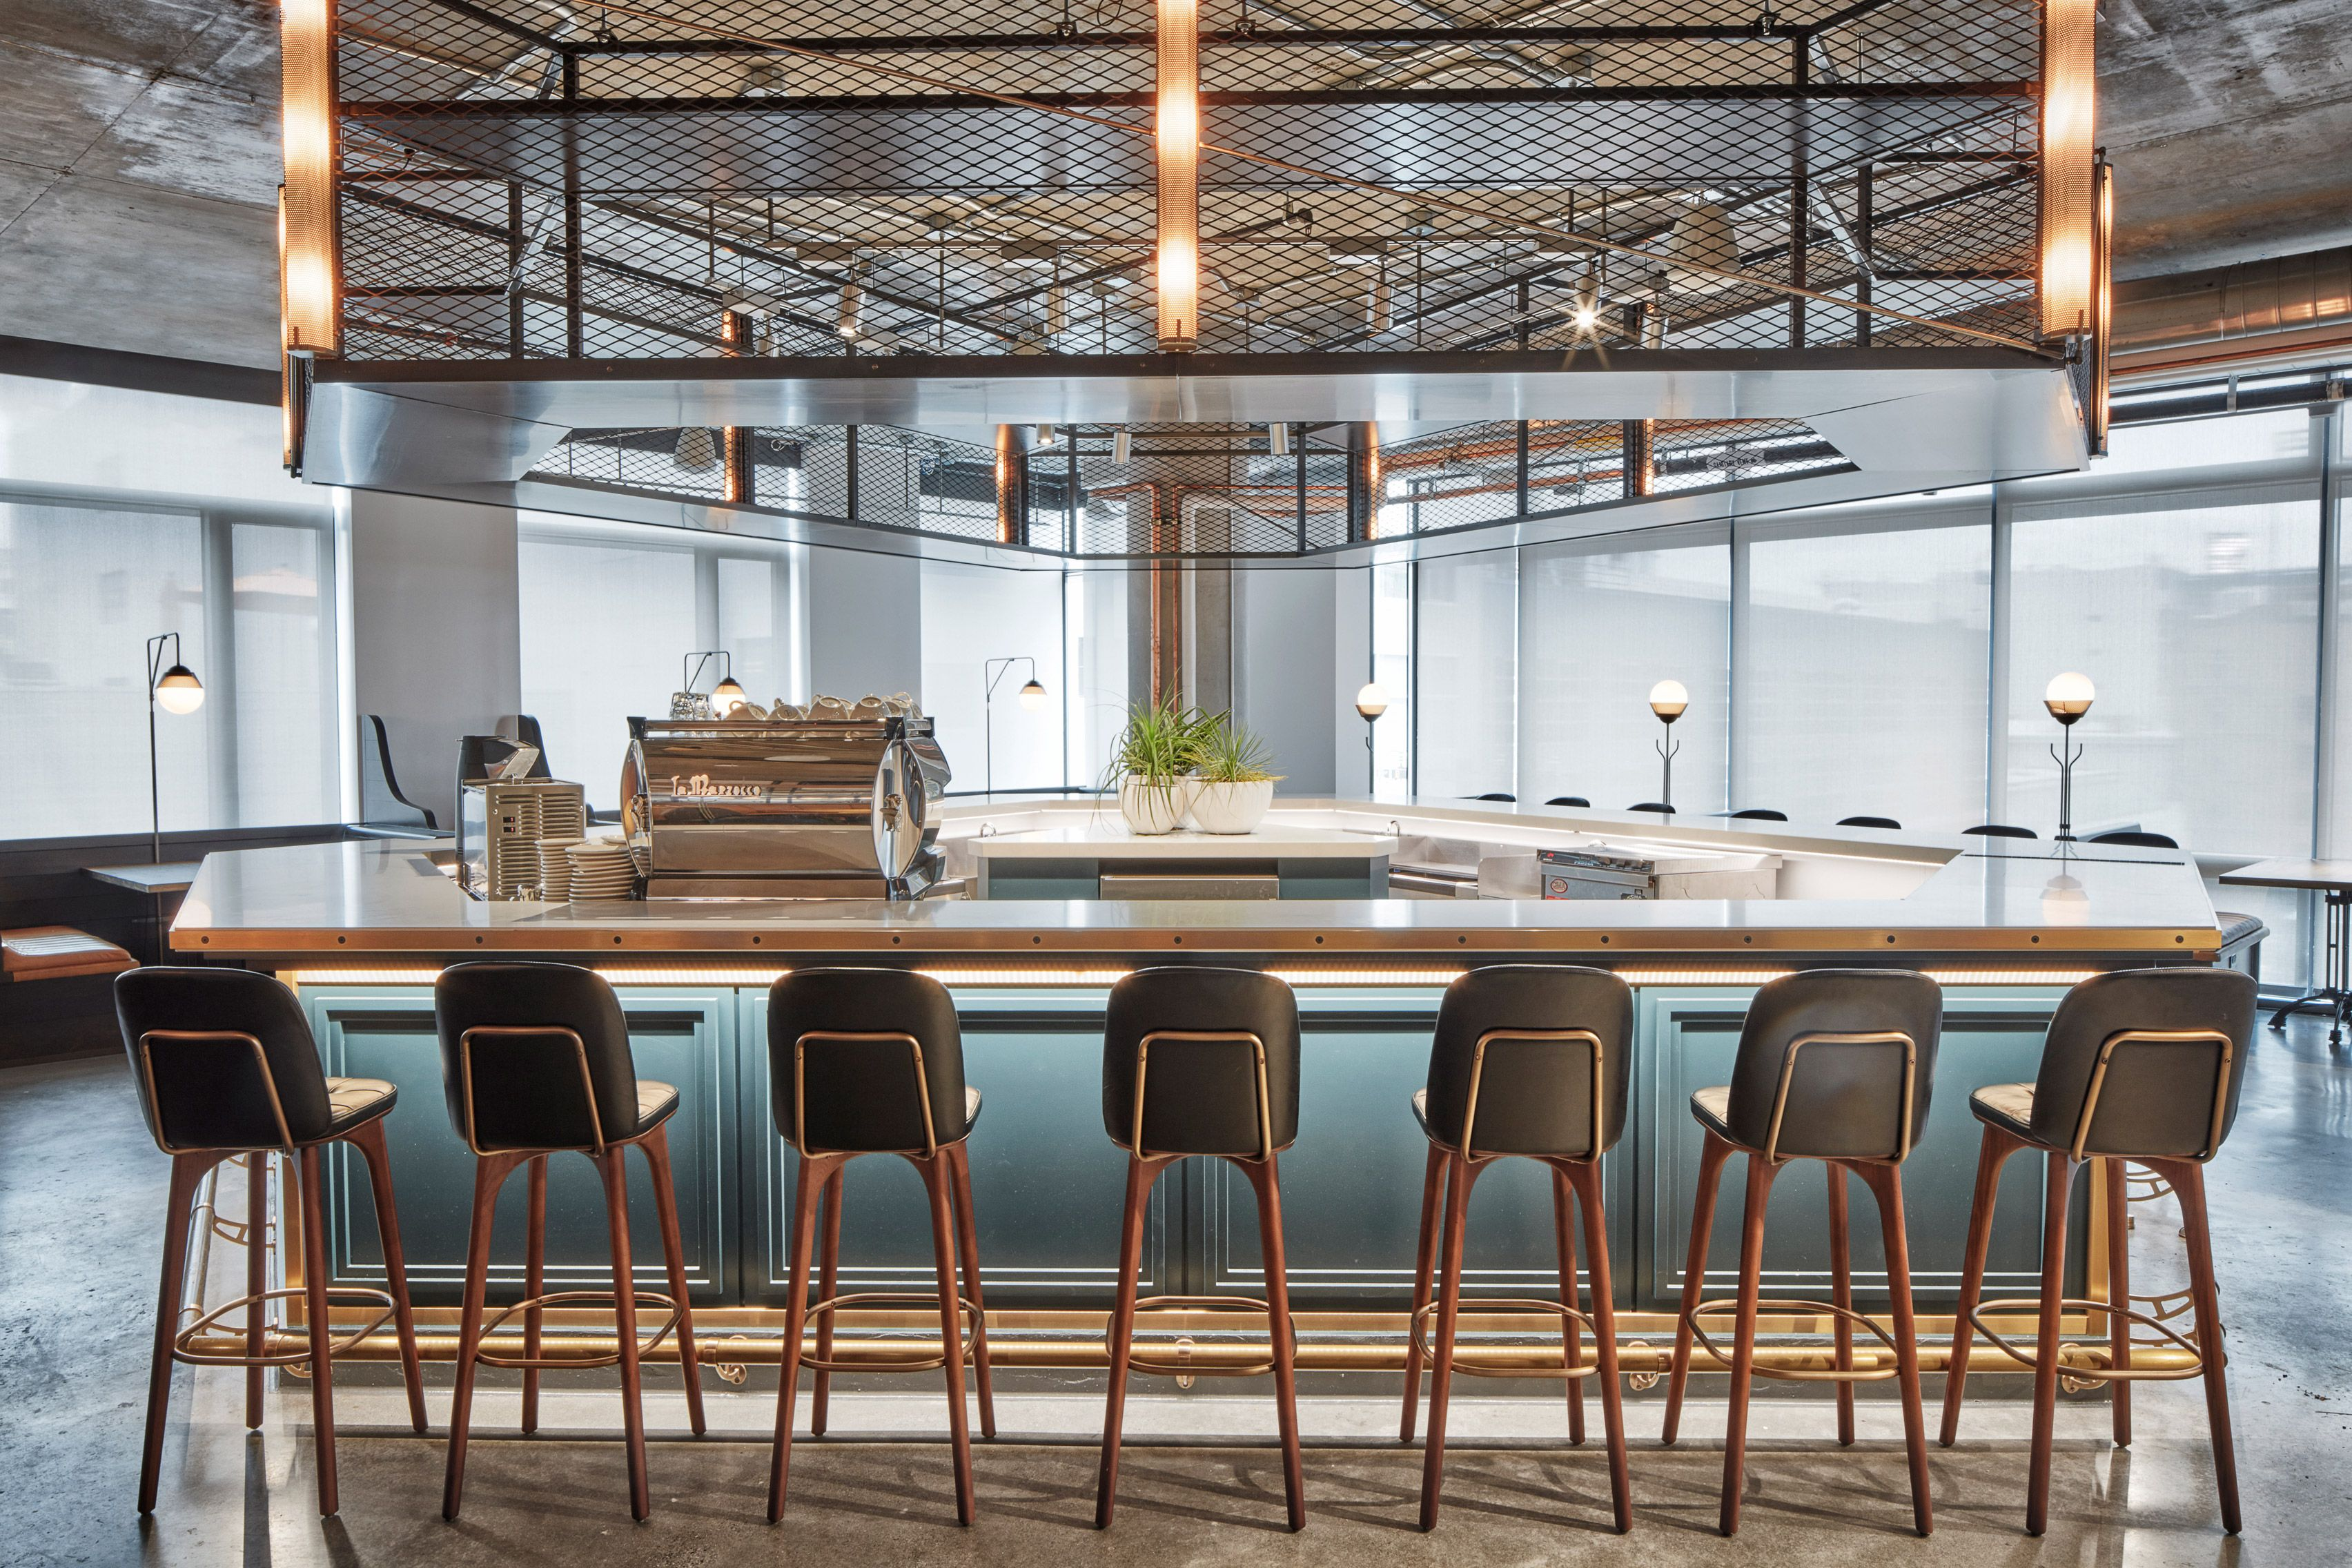 dropbox opens industrial-style cafeteria at california